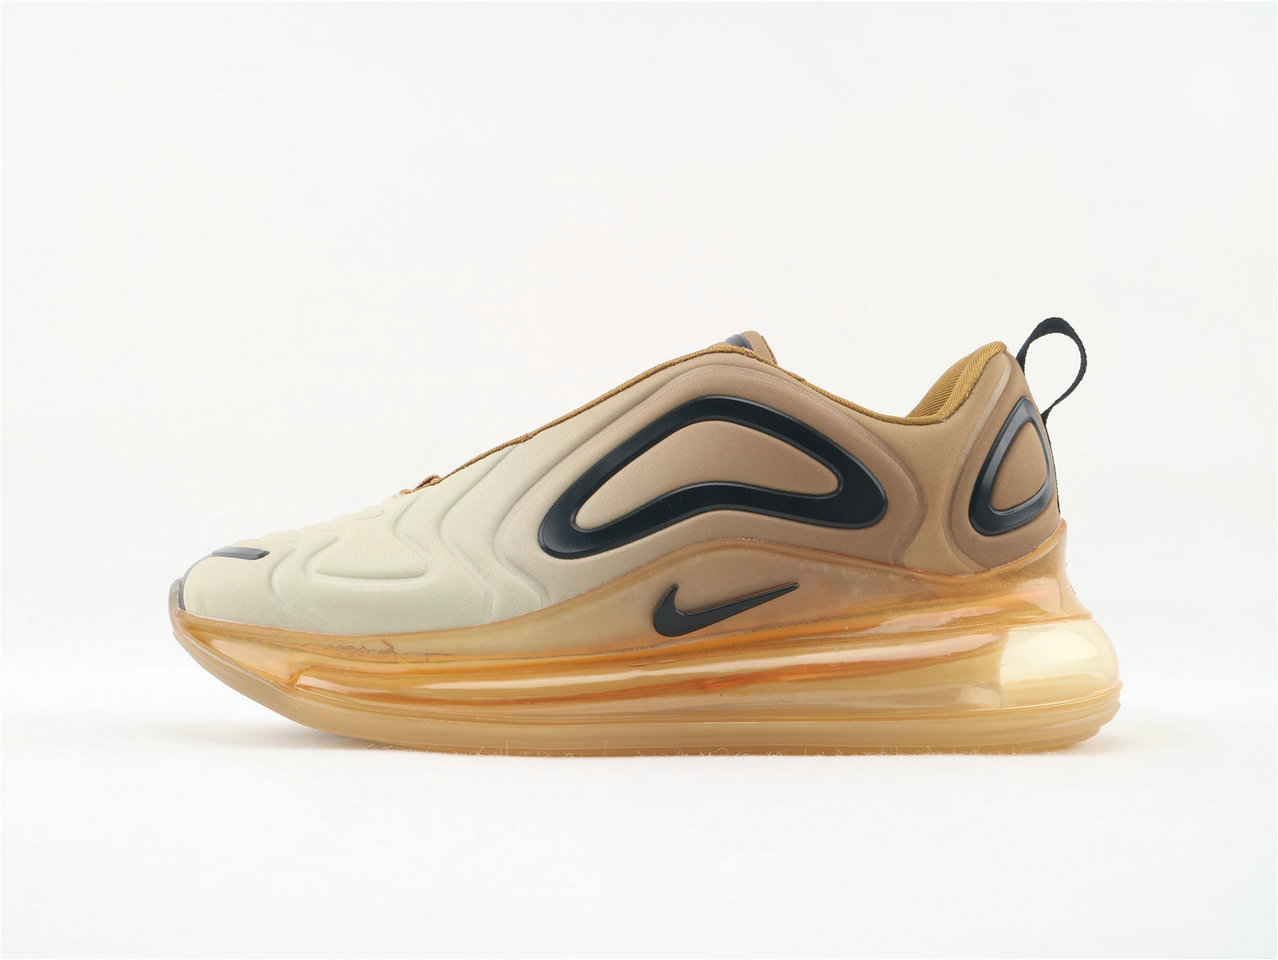 Where To Buy Womens Nike Sportwear Air Max 720 Desert Gold Black AO2924-700